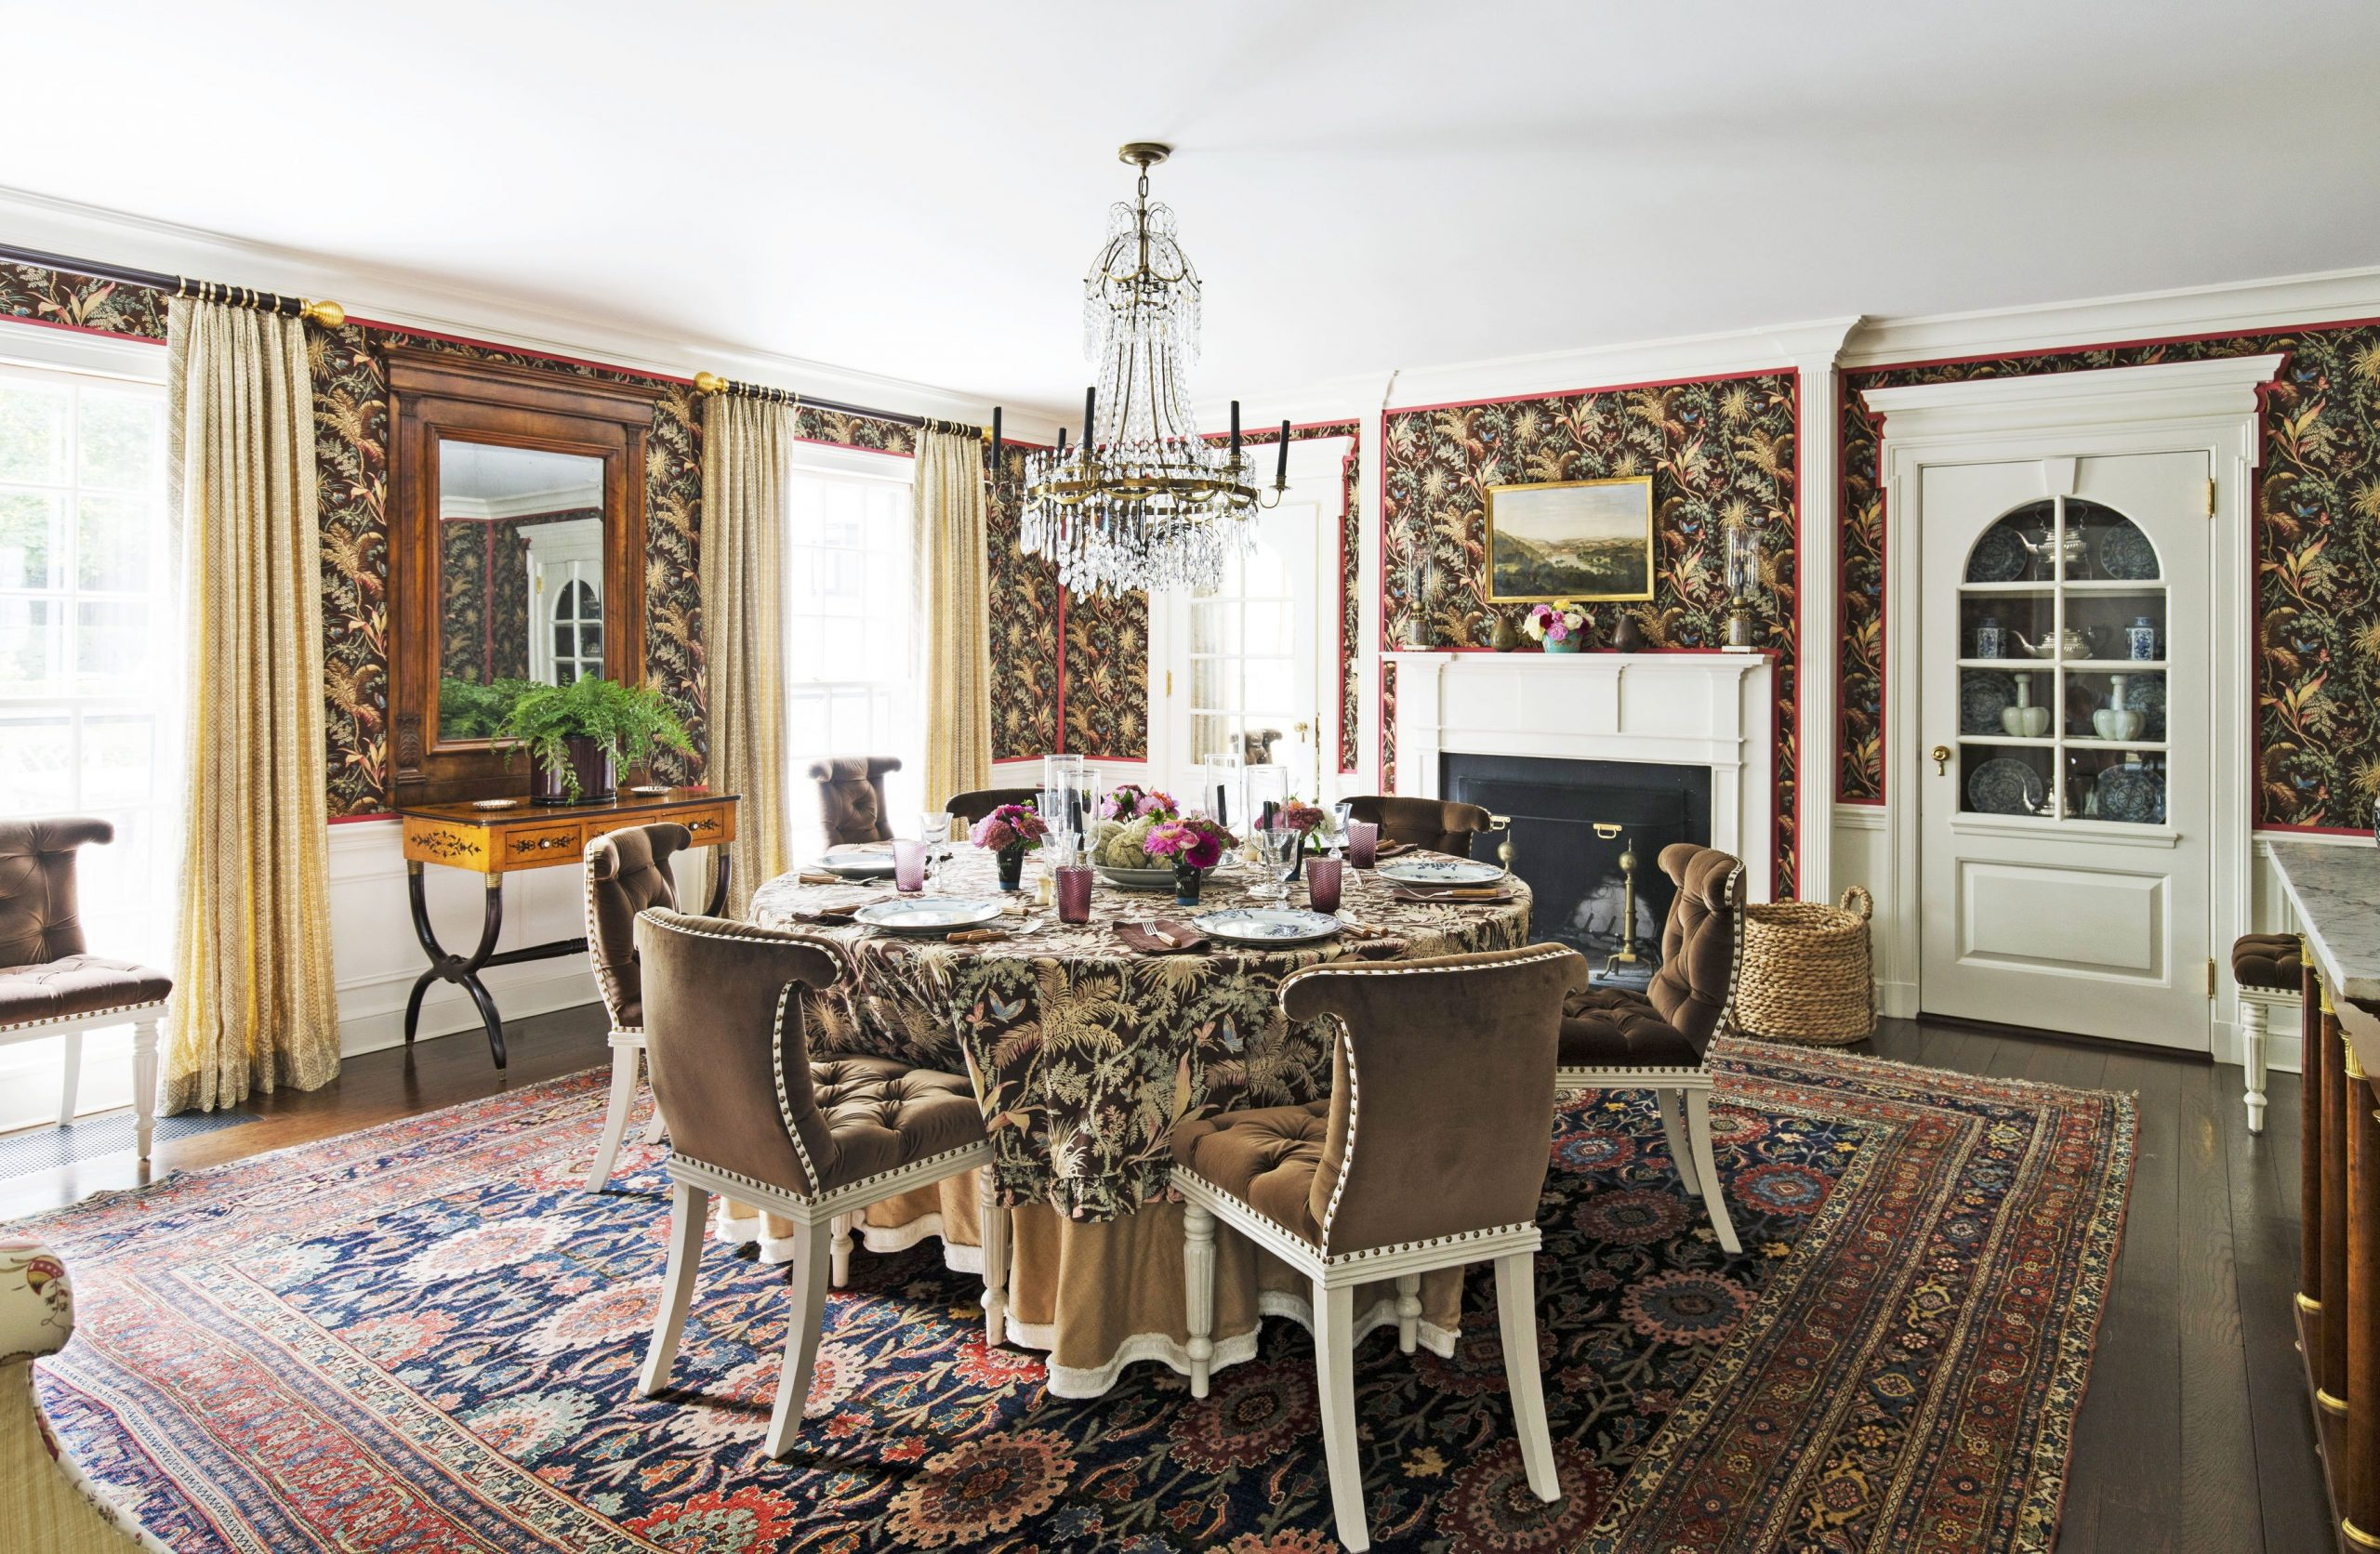 Want a Table For Your Dining Room? Here Are Some Mistakes to Avoid